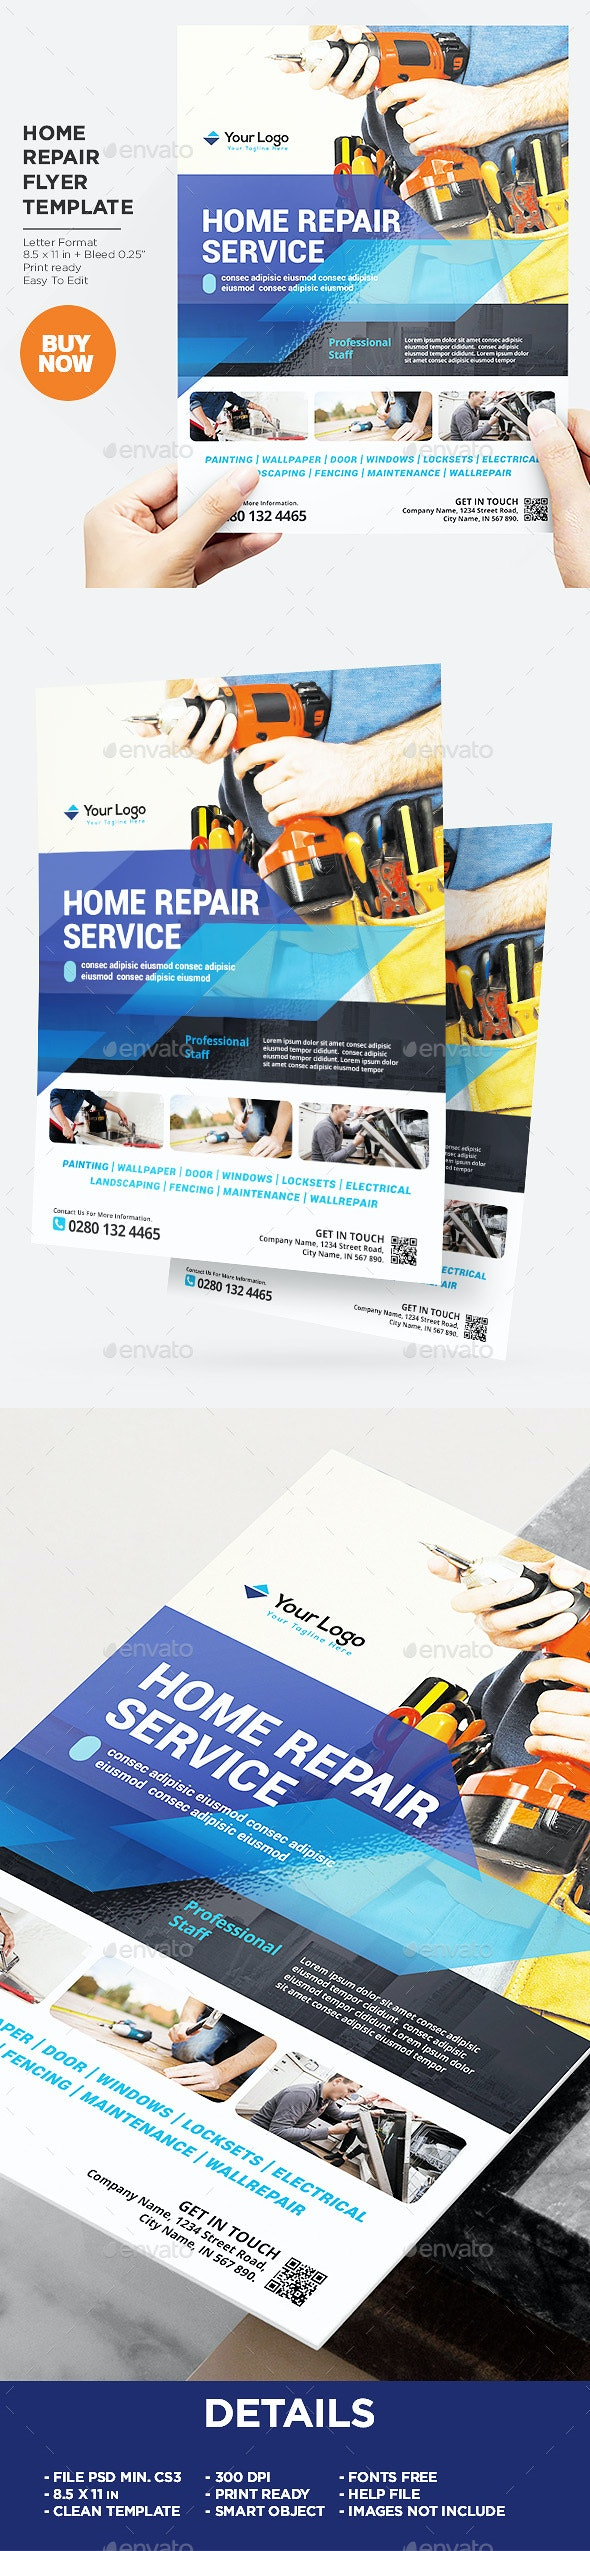 Home Repair Services Flyer - Corporate Flyers